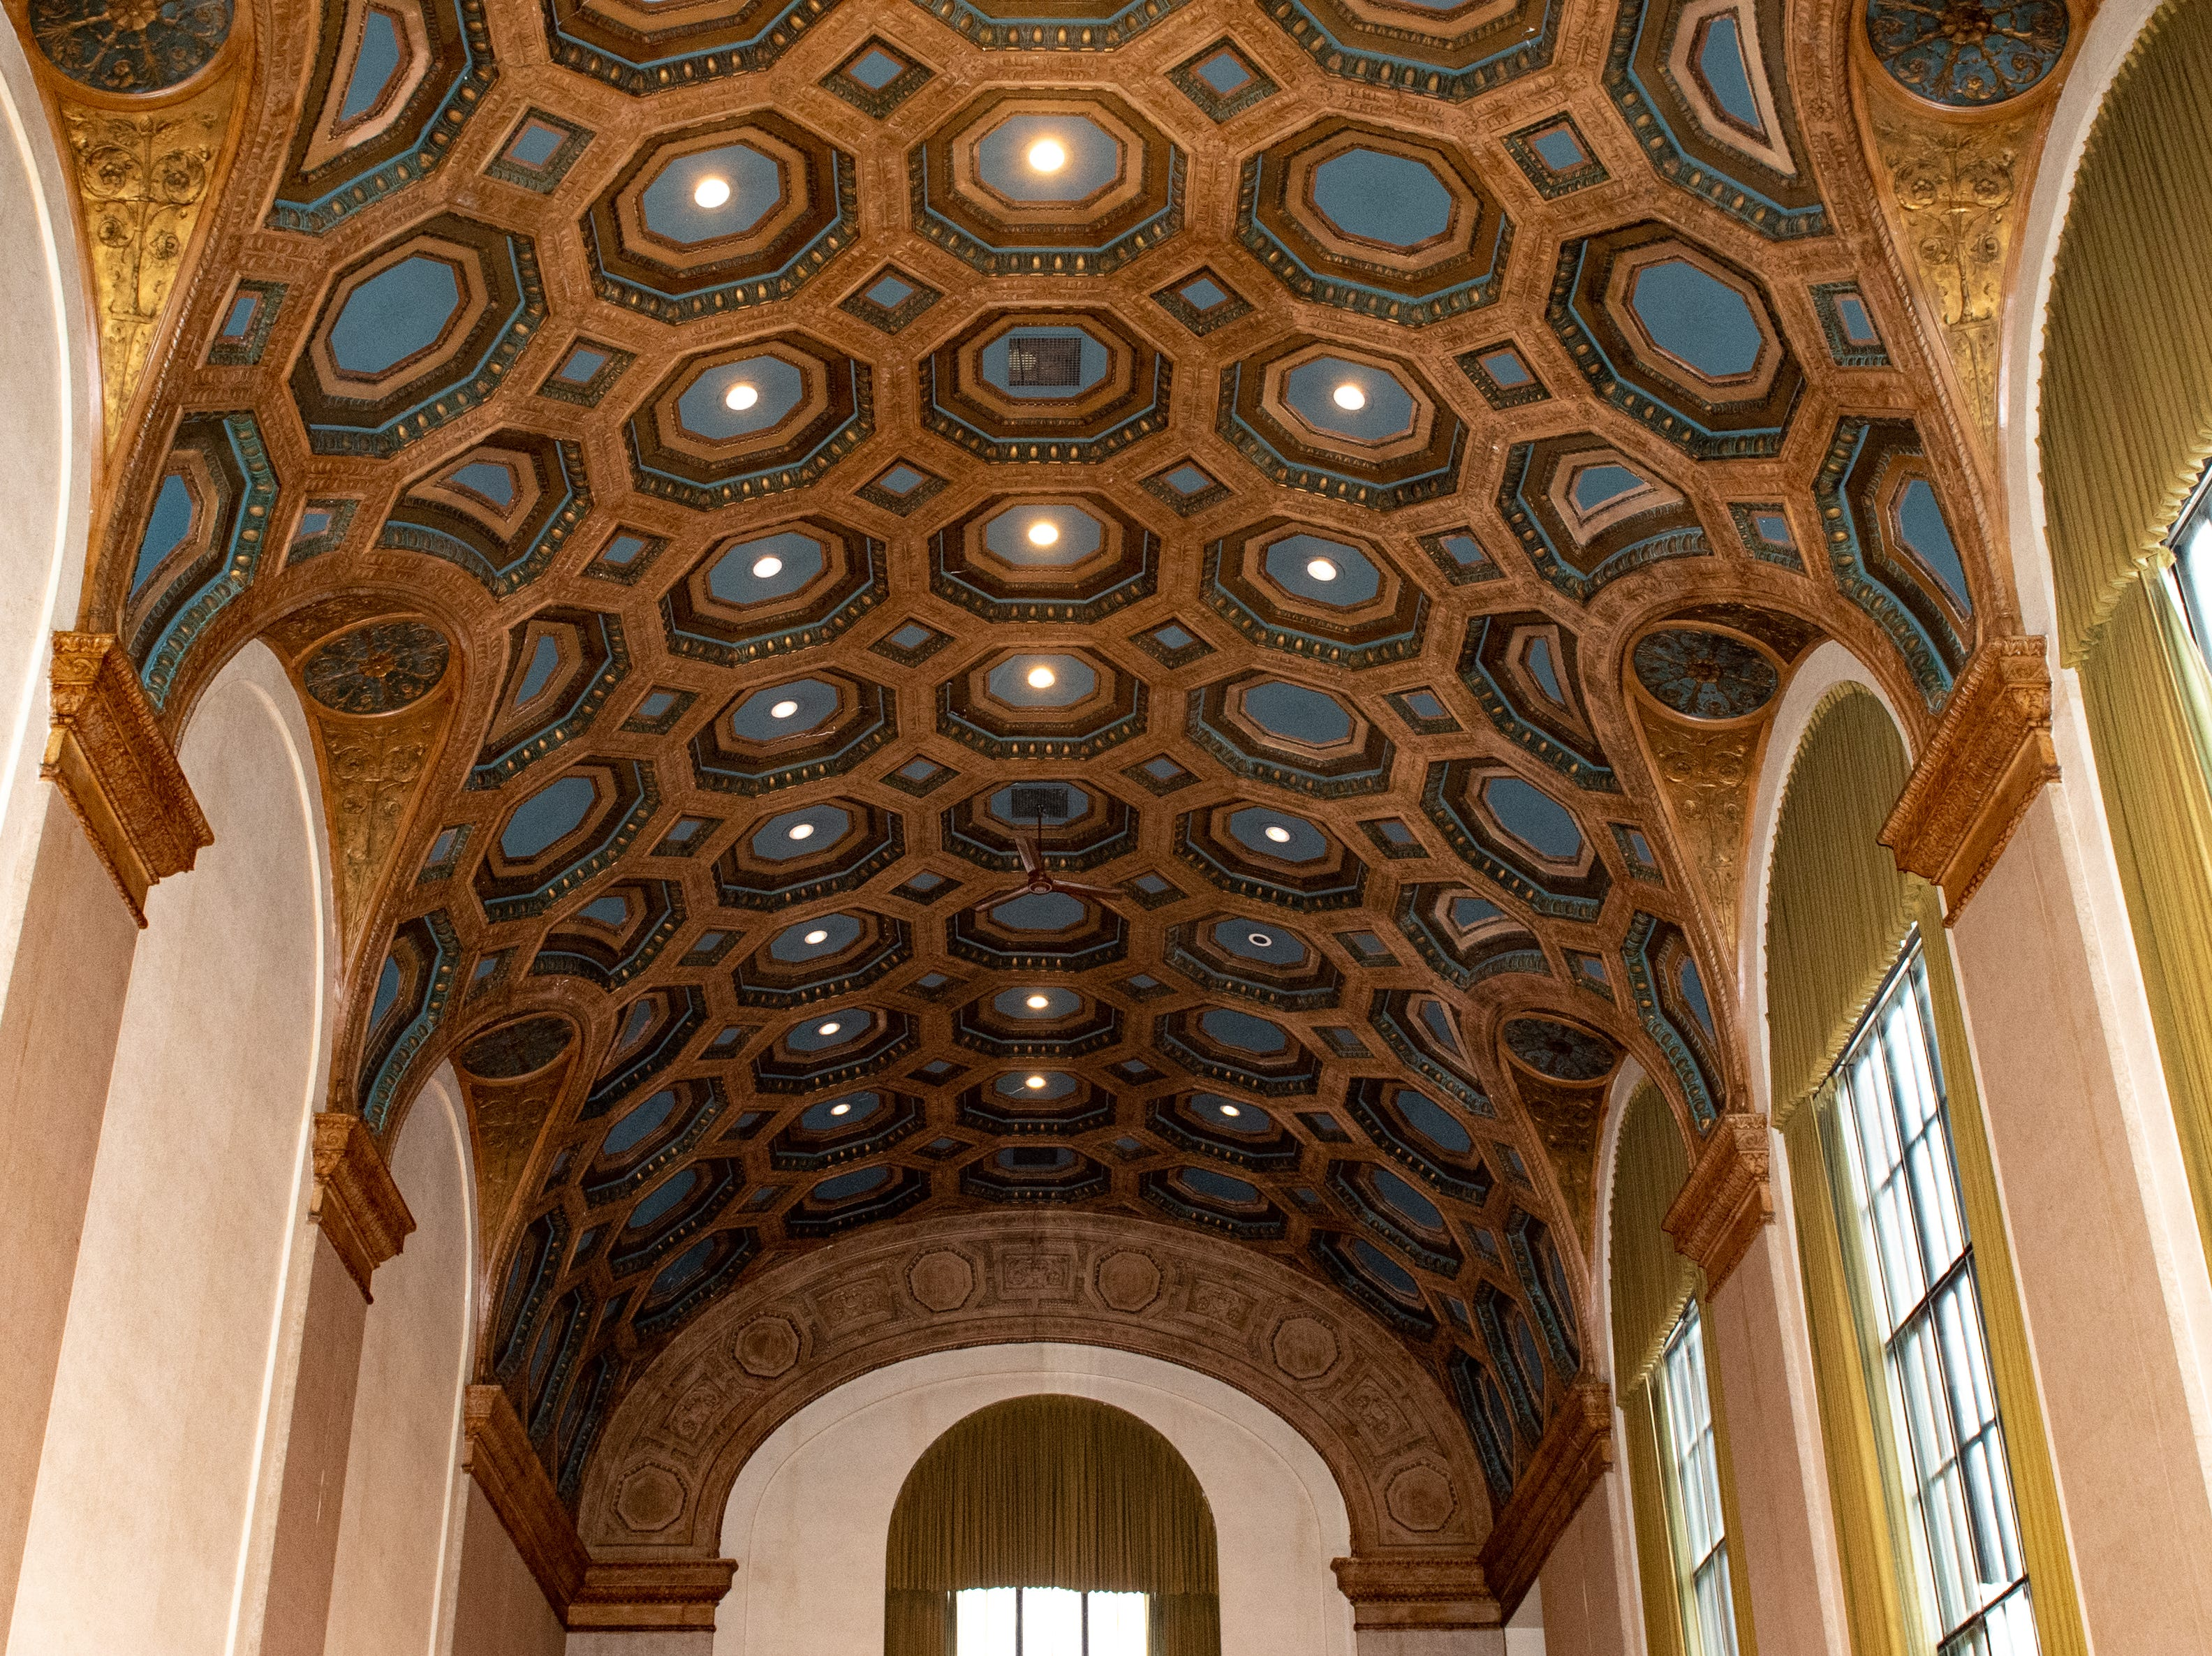 The ceiling will be refurbished as part of the redevelopment, January 29, 2019.